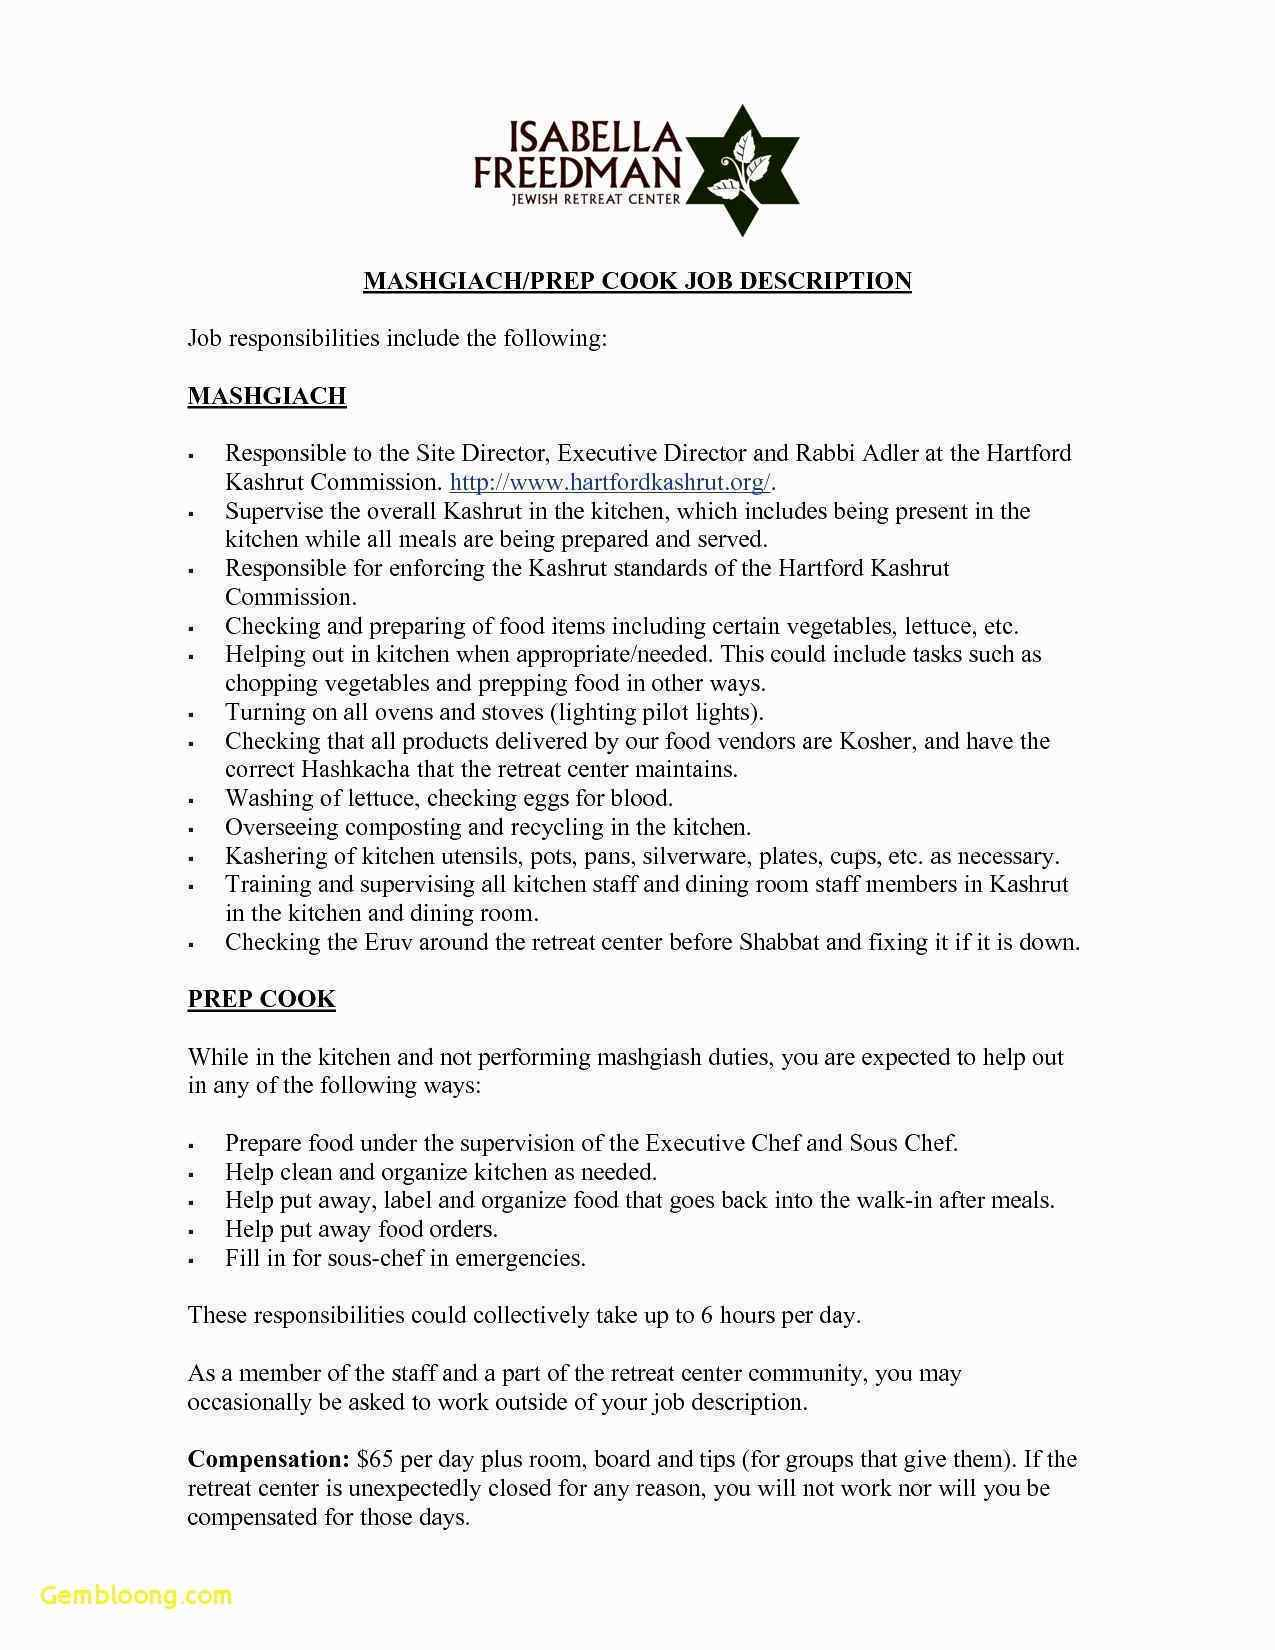 Nursing Resume Template Microsoft Word - Unique Nursing Resume Template Word Cv Resume